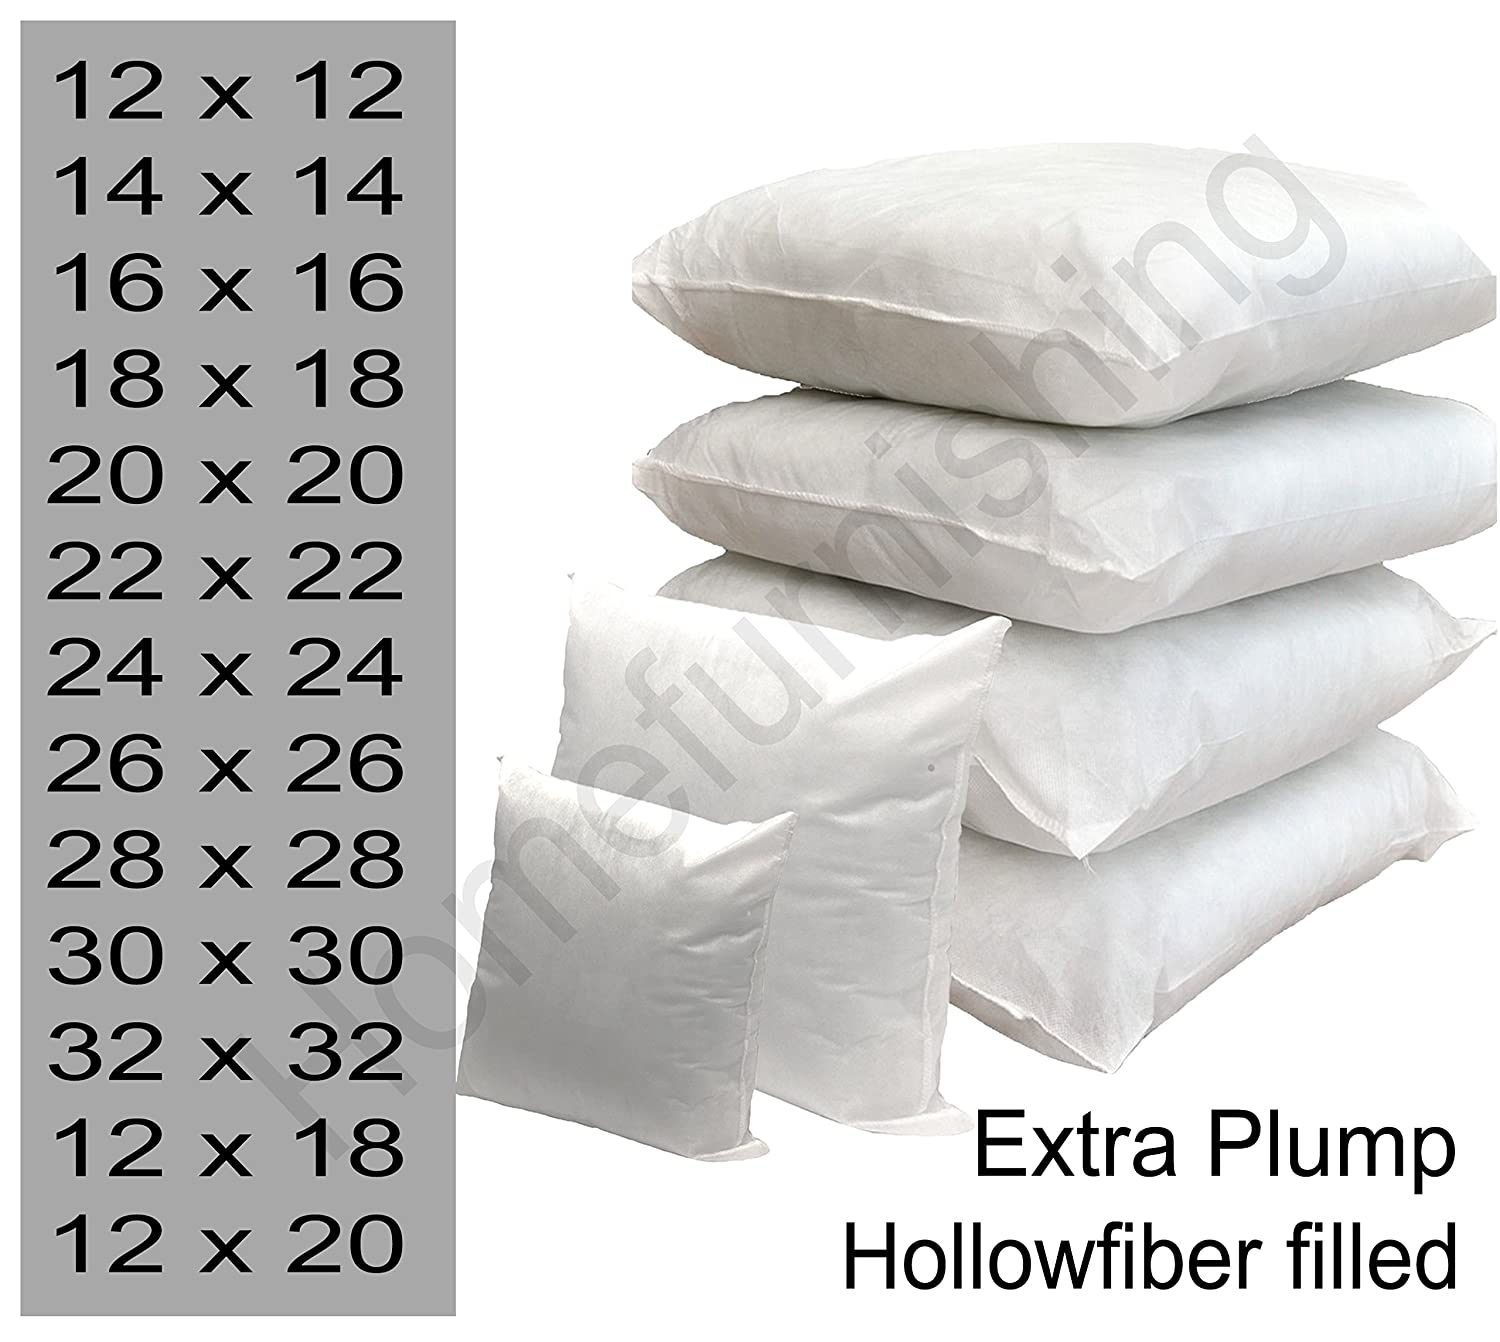 Cushion Inner Pads Scatters Hollowfibre Filling Square Inserts Cushion in All Sizes 12-26 Pack Of 1, 2 and 4 (12 x 12 Pack Of 1) homefurnishing